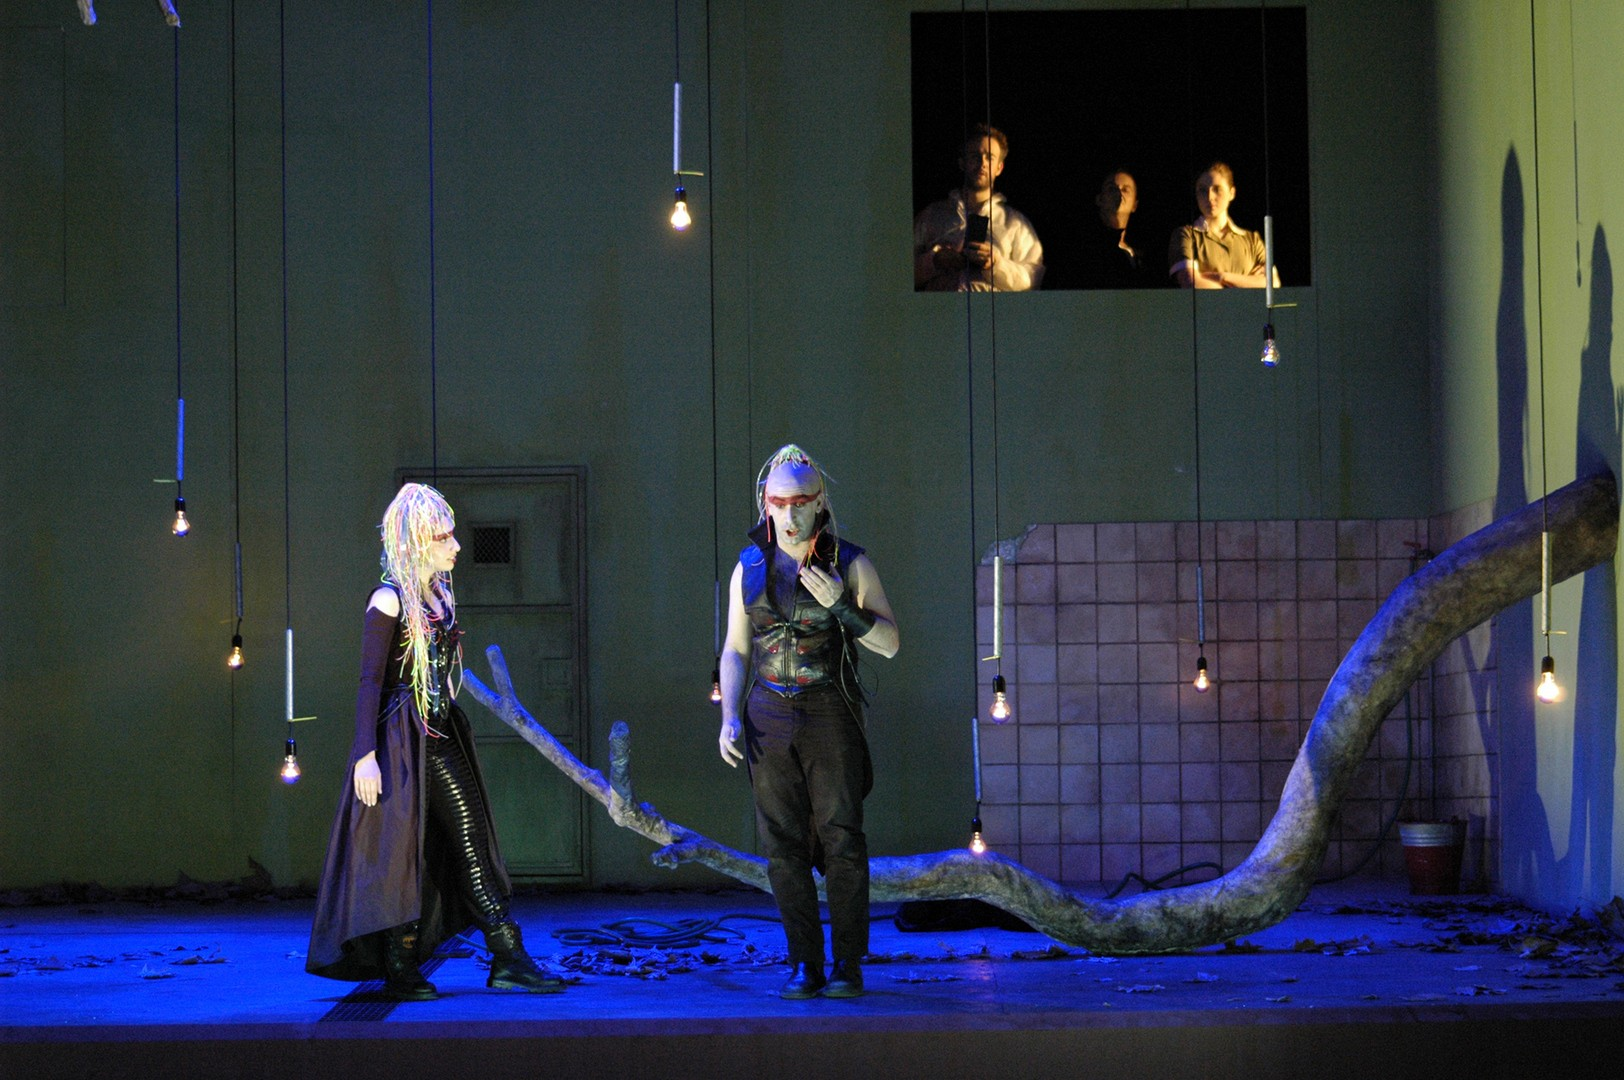 Bastiano-and-Bastiana-Opera-directed-by-Jacopo-Spirei-7